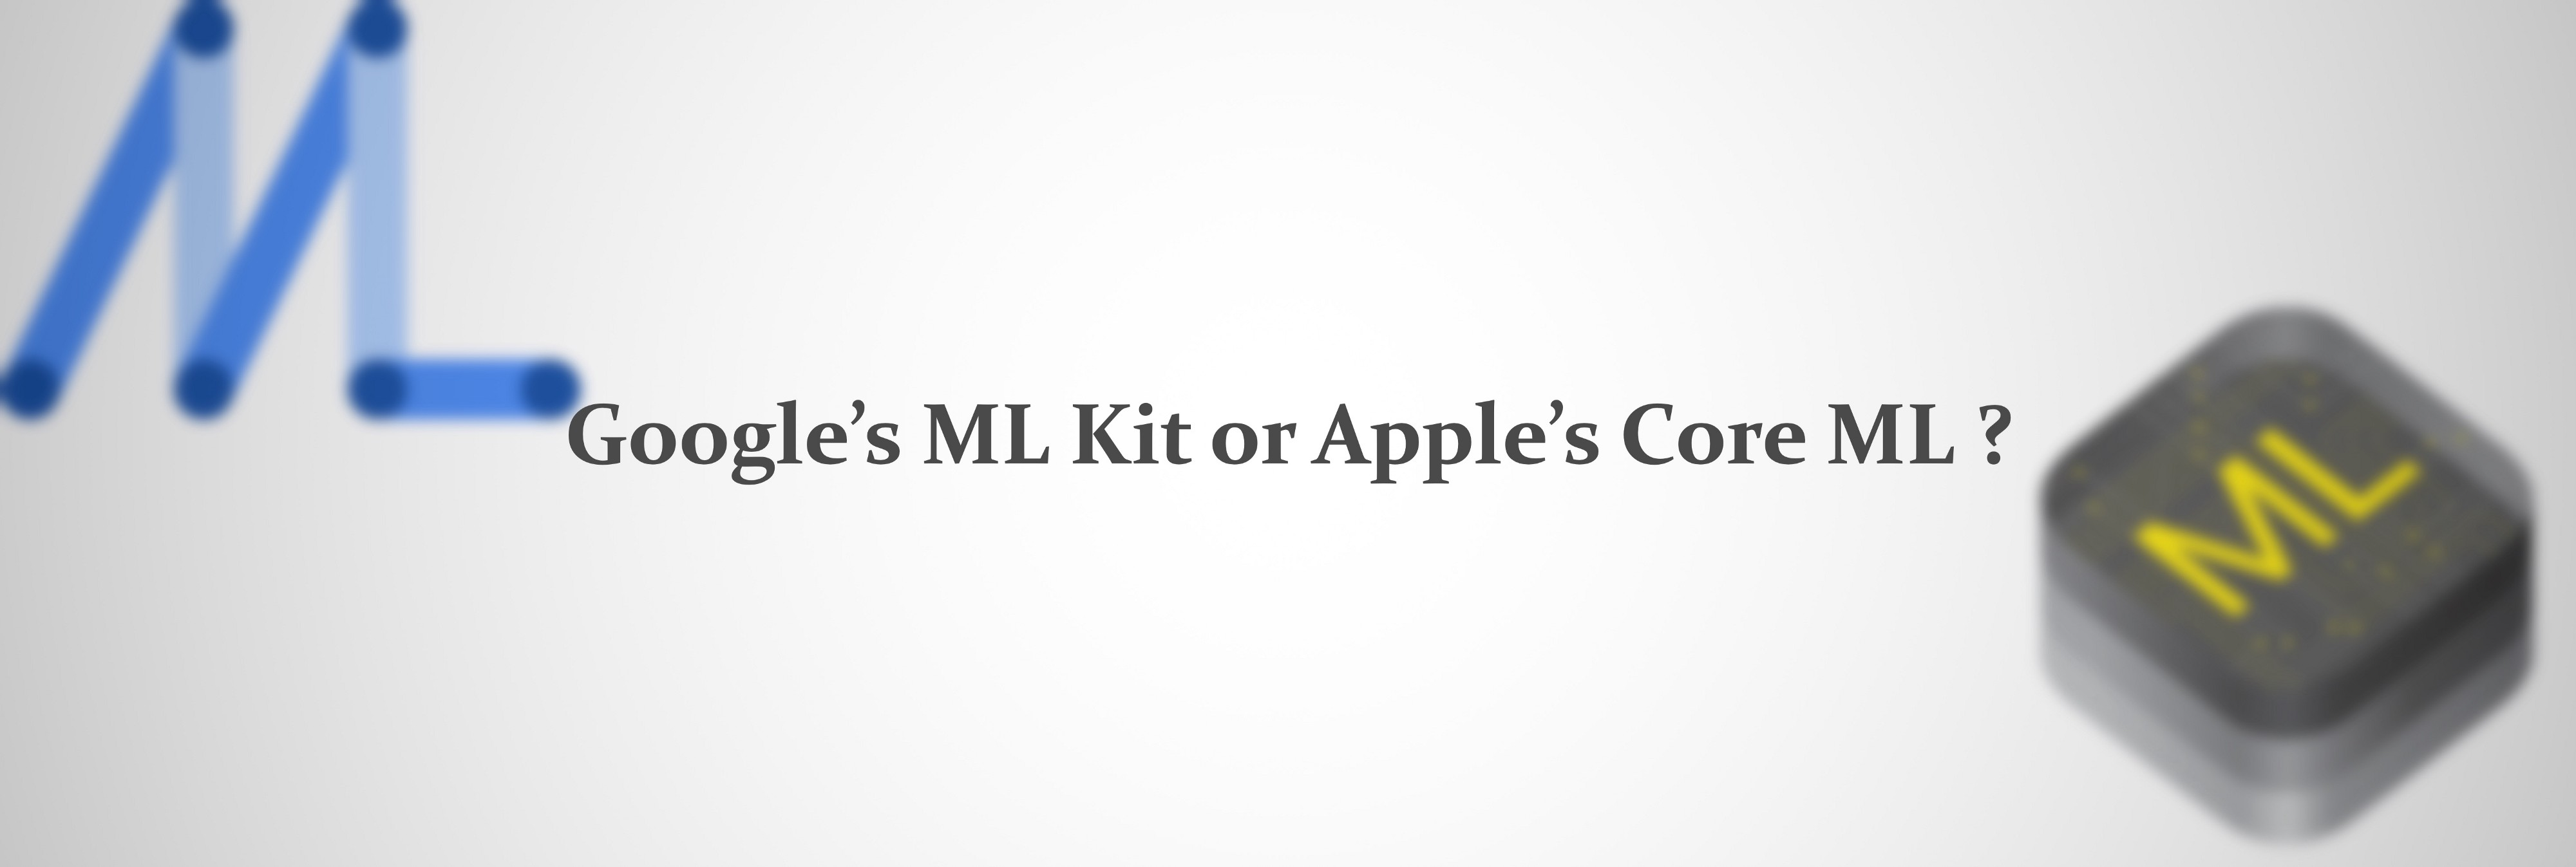 Deep Dive Into Google's ML Kit and Apple's Core ML: Which